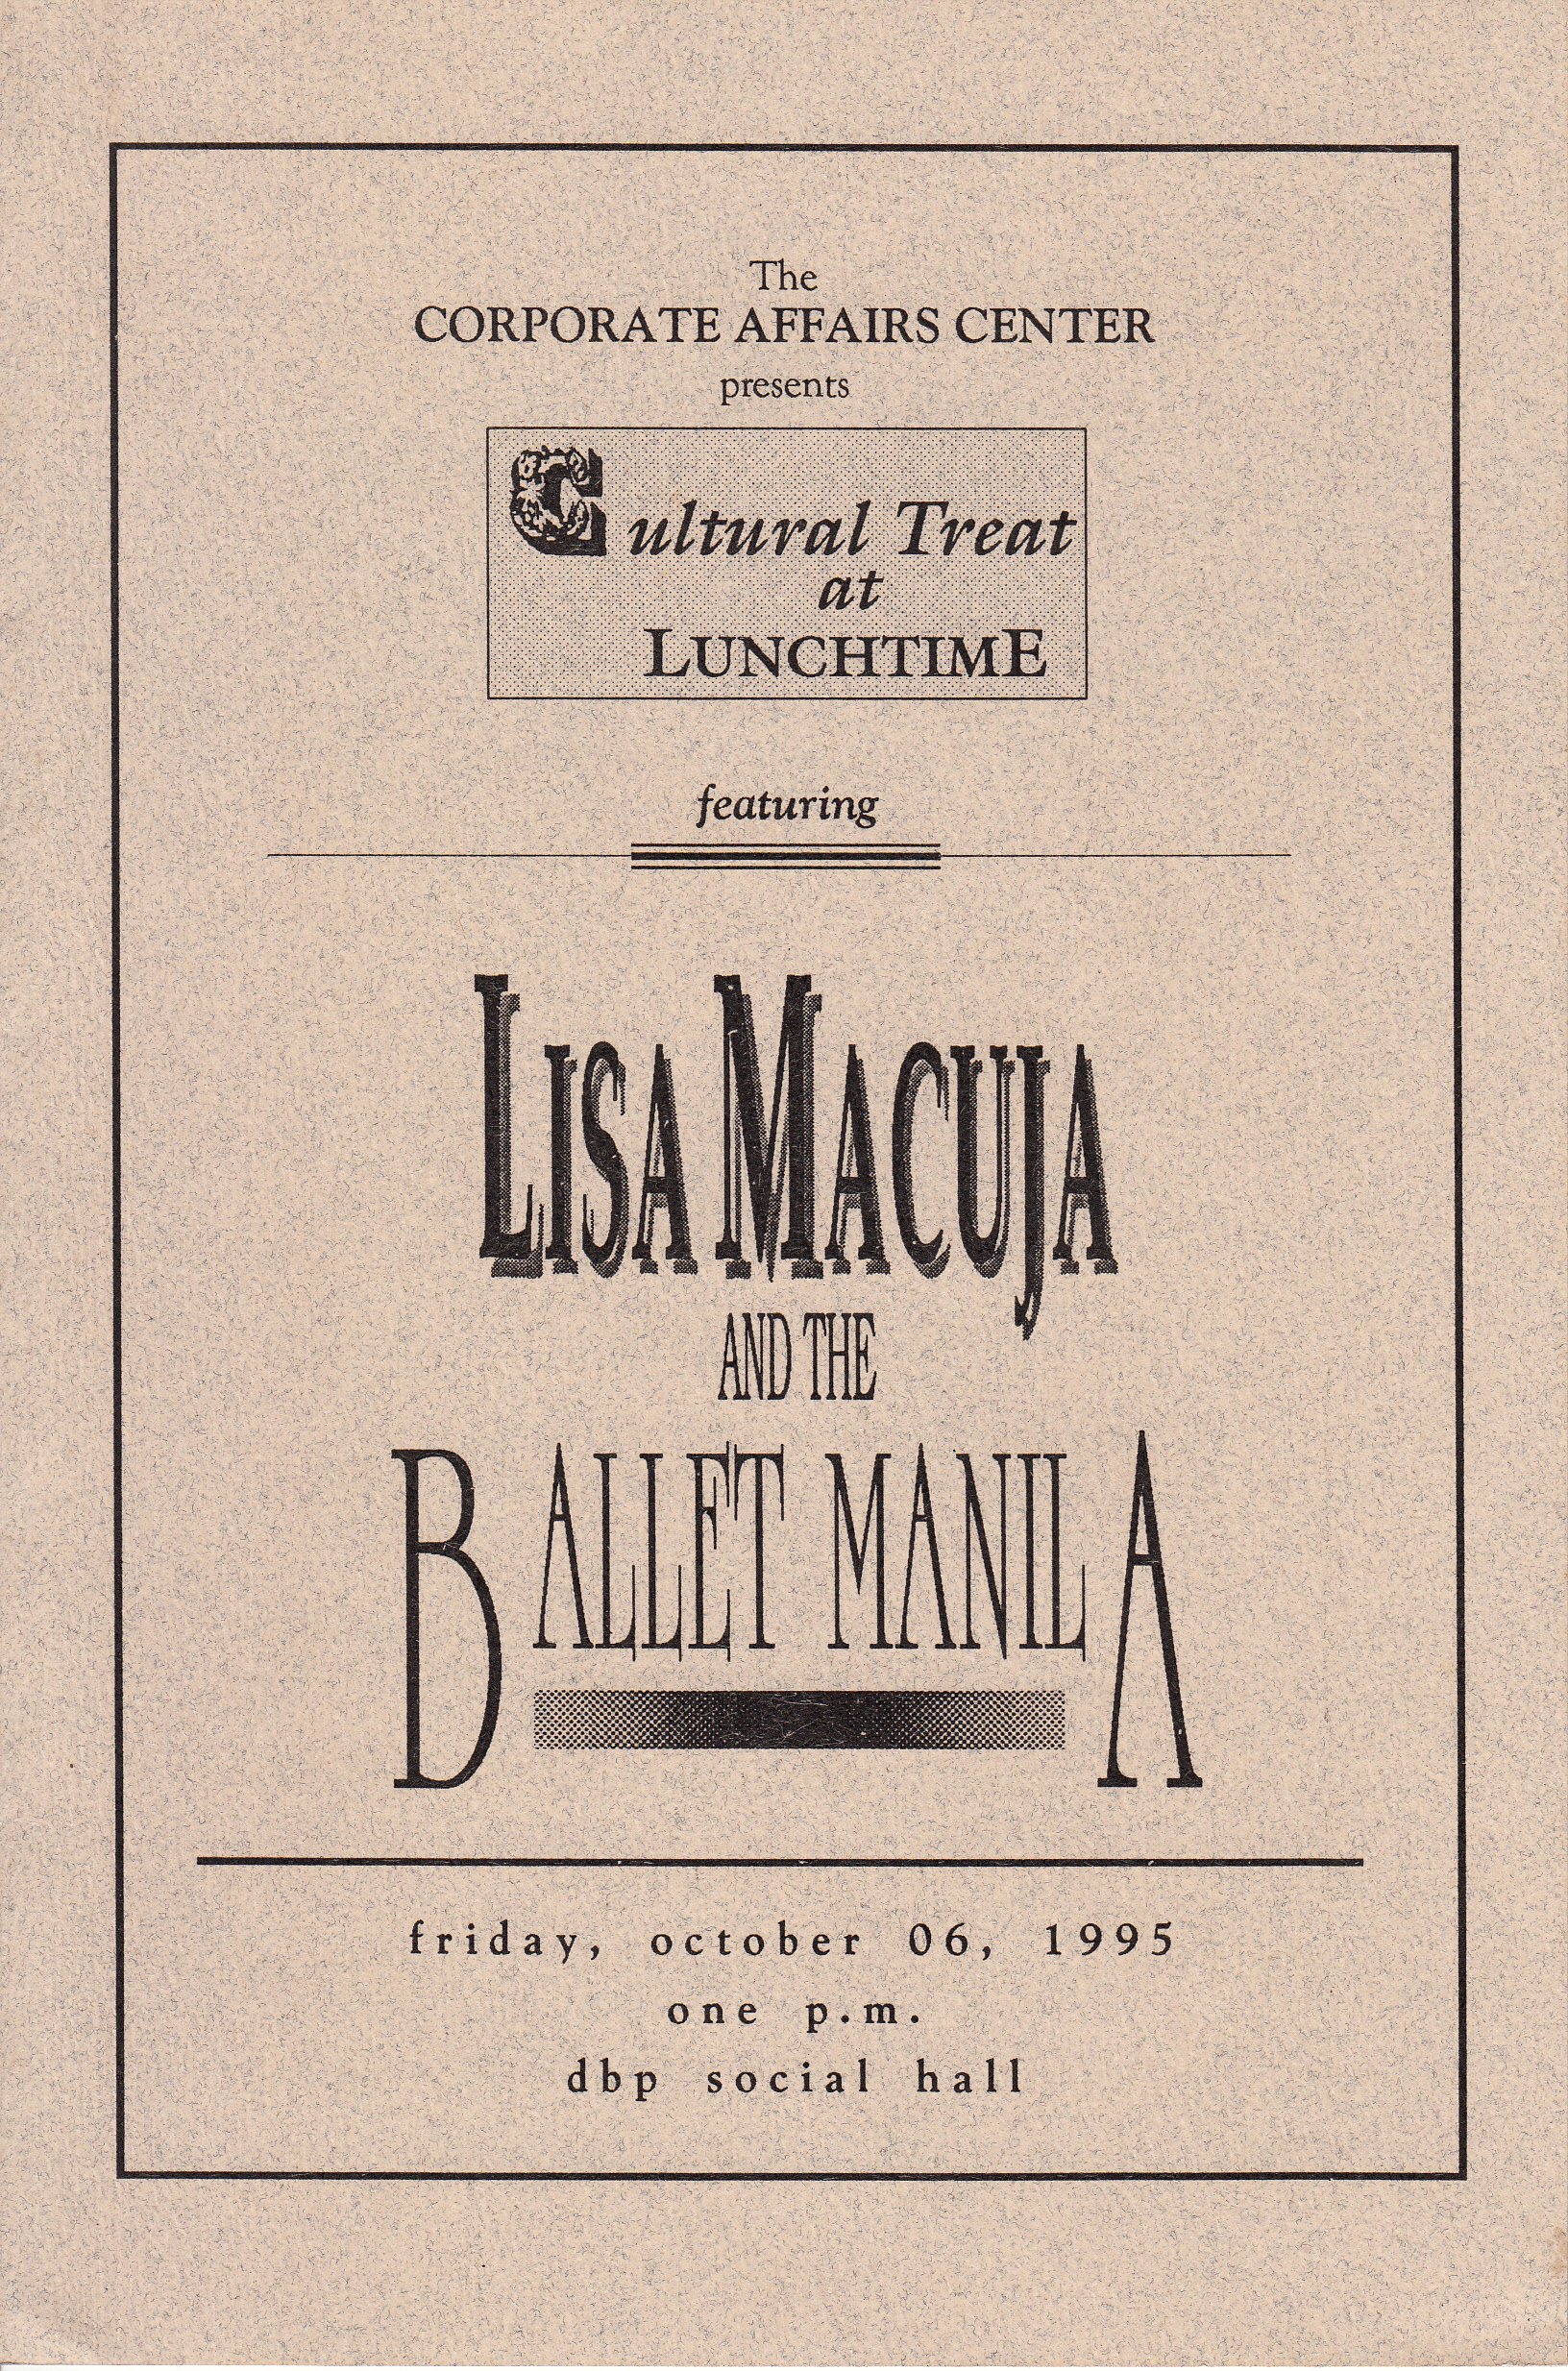 Cover of the souvenir program for the Development Bank of the Philippines' monthly social gathering with Ballet Manila as guest. From the Ballet Manila Archives collection